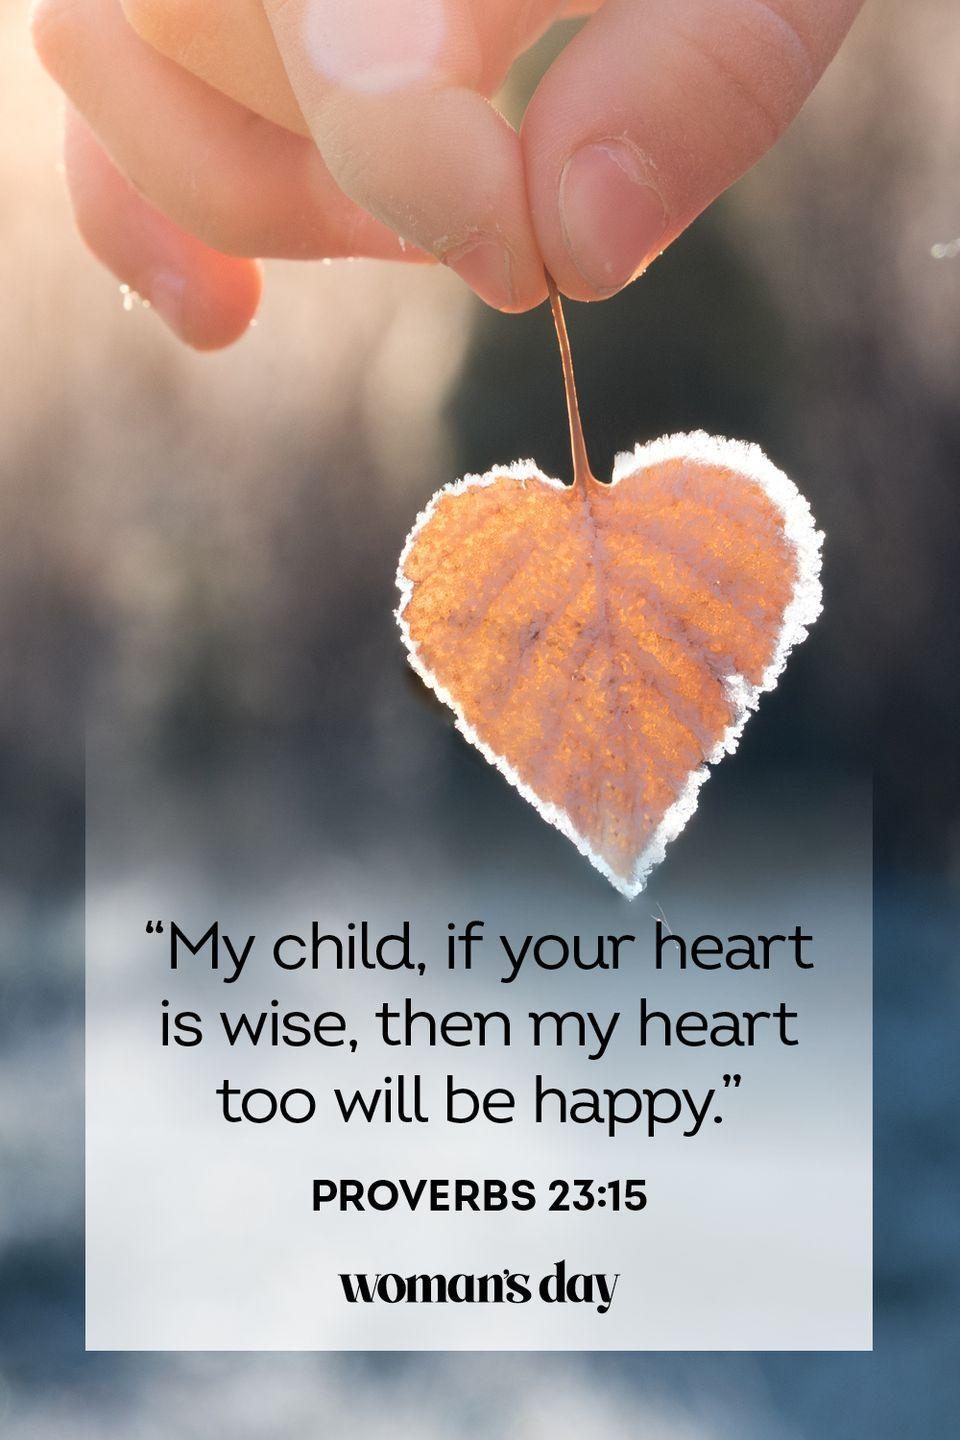 """<p>""""My child, if your heart is wise, then my heart too will be happy."""" — Proverbs 23:15</p><p><strong>The Good News</strong>: If your child is happy, you will be happy. If your child is successful, you will be successful.<br><strong><br>__________________________________________________________</strong><em><br><br><a href=""""https://subscribe.hearstmags.com/subscribe/womansday/253396?source=wdy_edit_article"""" rel=""""nofollow noopener"""" target=""""_blank"""" data-ylk=""""slk:Subscribe to Woman's Day"""" class=""""link rapid-noclick-resp"""">Subscribe to Woman's Day</a> today and get <strong>73% off your first 12 issues</strong>. And while you're at it, <a href=""""https://subscribe.hearstmags.com/circulation/shared/email/newsletters/signup/wdy-su01.html"""" rel=""""nofollow noopener"""" target=""""_blank"""" data-ylk=""""slk:sign up for our FREE newsletter"""" class=""""link rapid-noclick-resp"""">sign up for our FREE newsletter</a> for even more of the Woman's Day content you want.</em></p>"""